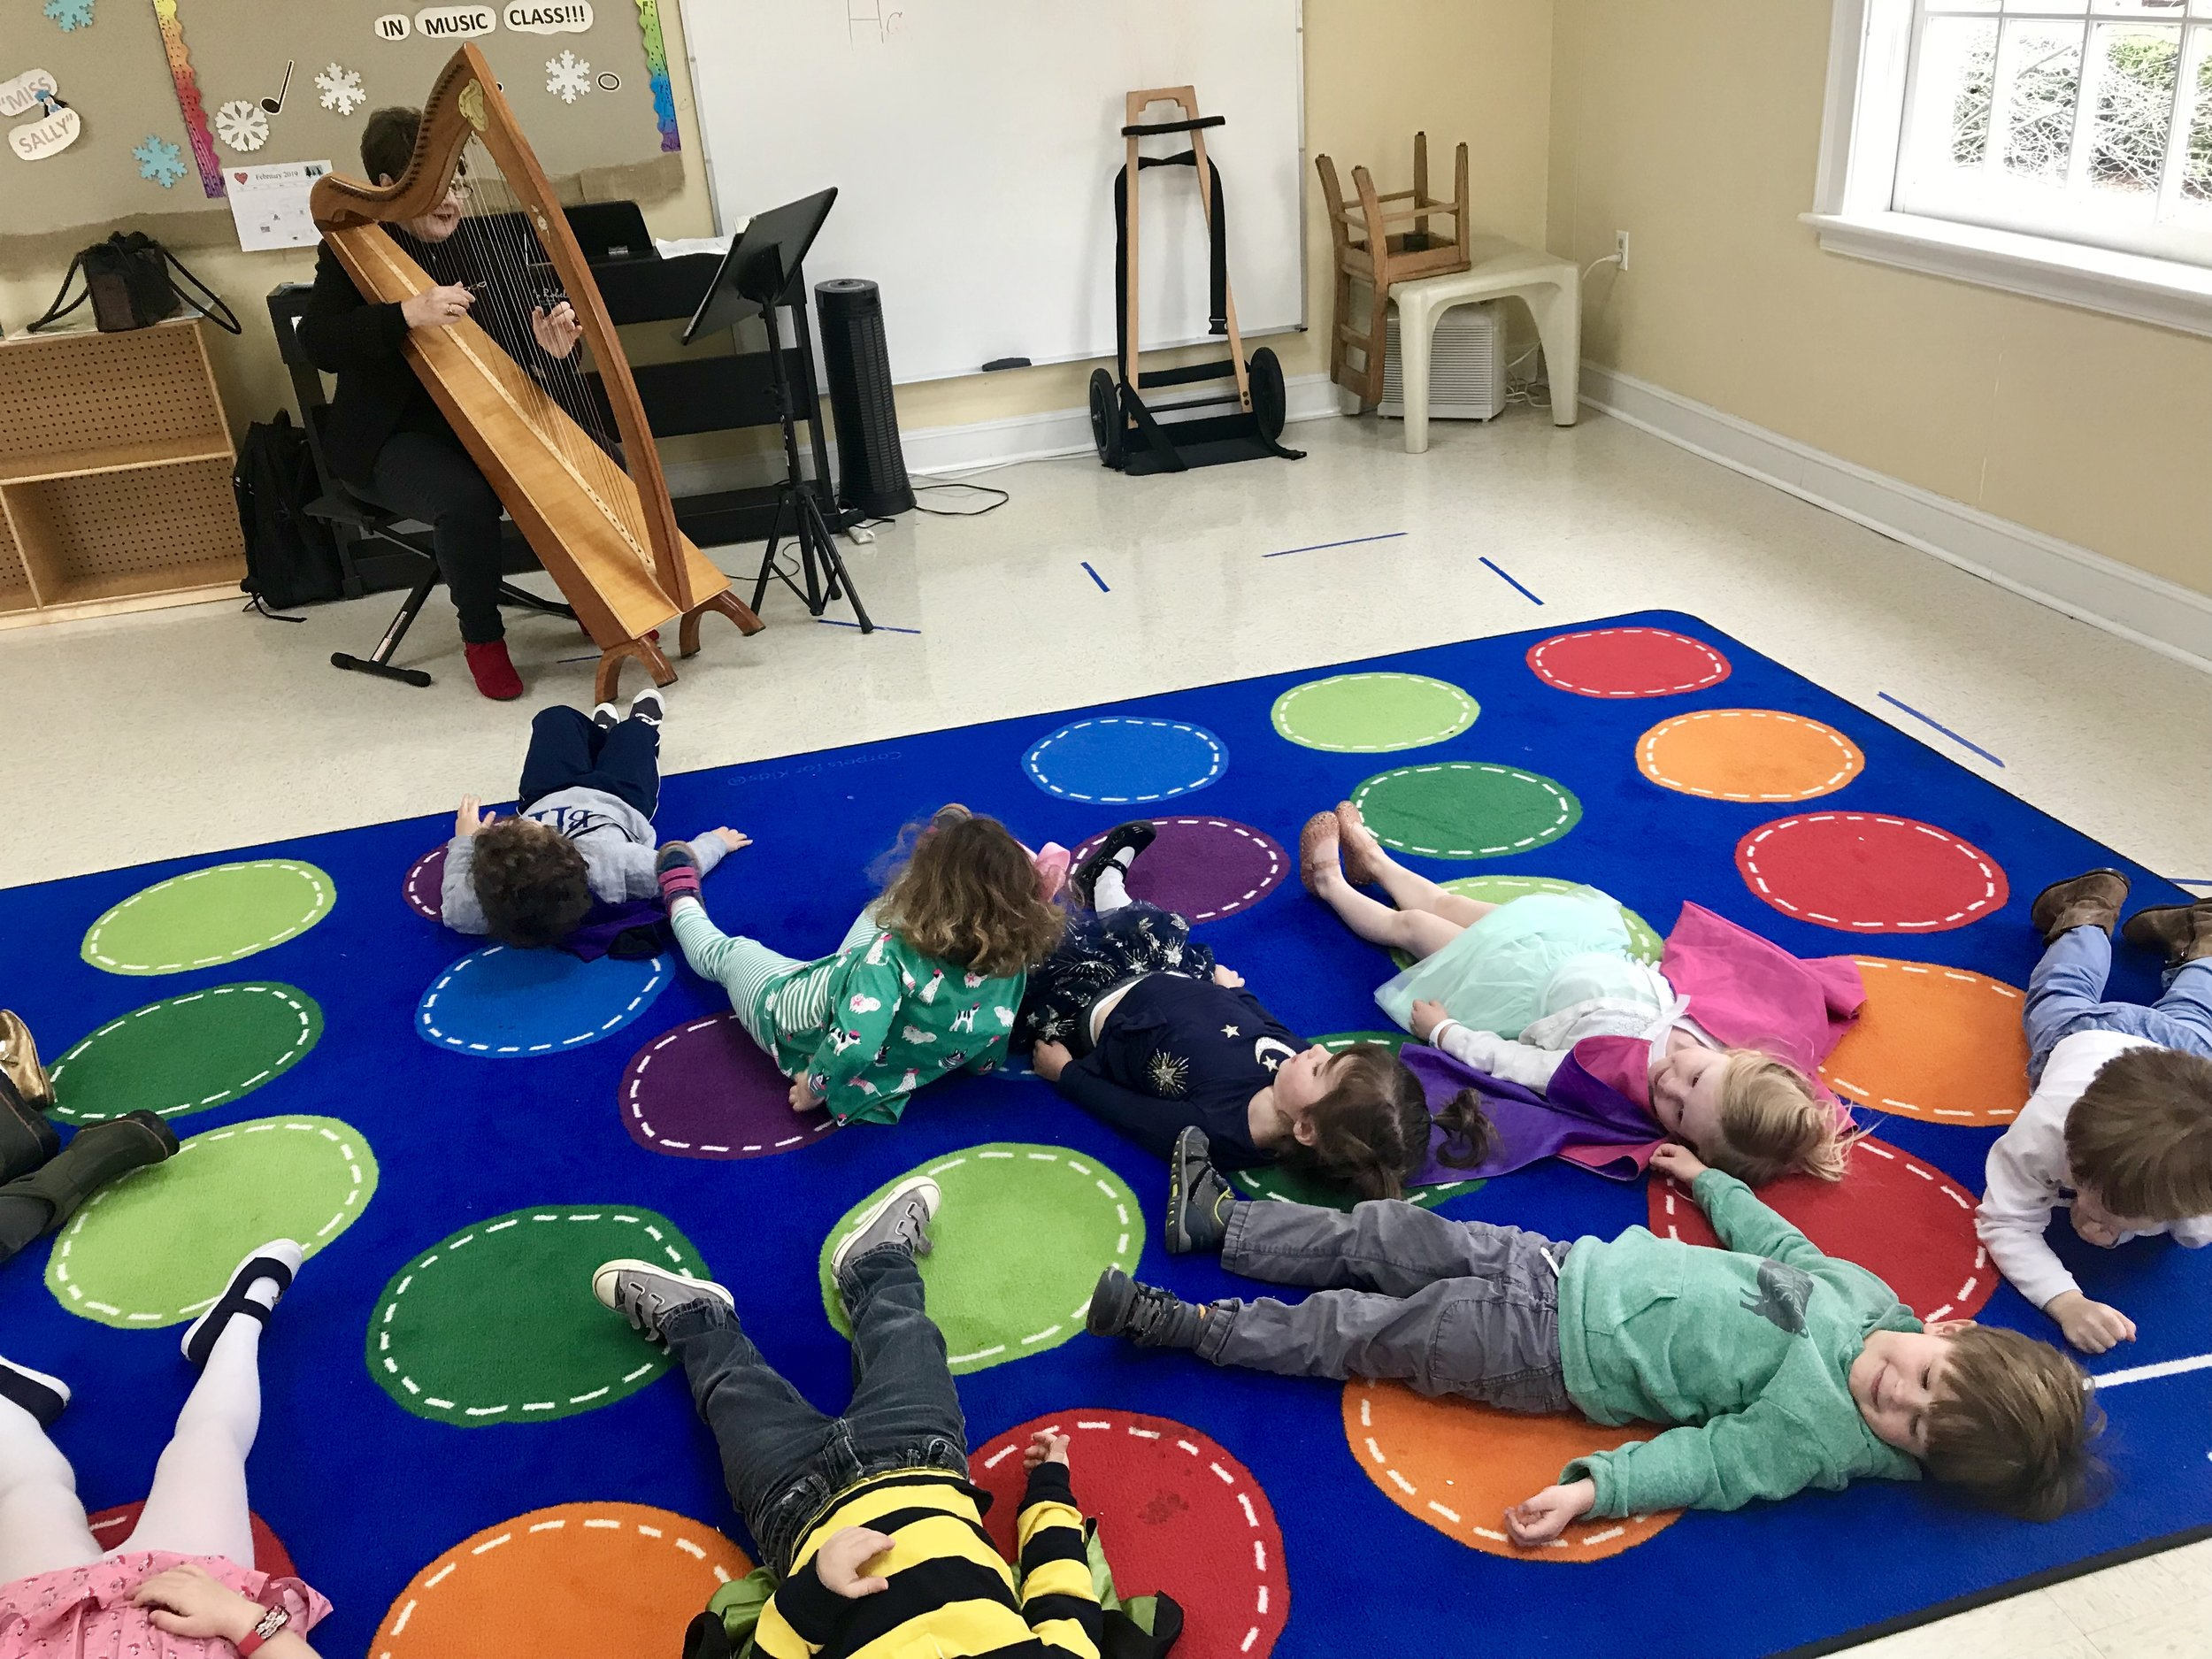 Miss Sally was on vacation this week. We had a wonderful substitute teacher, Miss Cindy, in music. She is the Music Administrator for the church; she brought along her amazing harp for the children to listen to and play! It made beautiful music, and the children found it very relaxing!